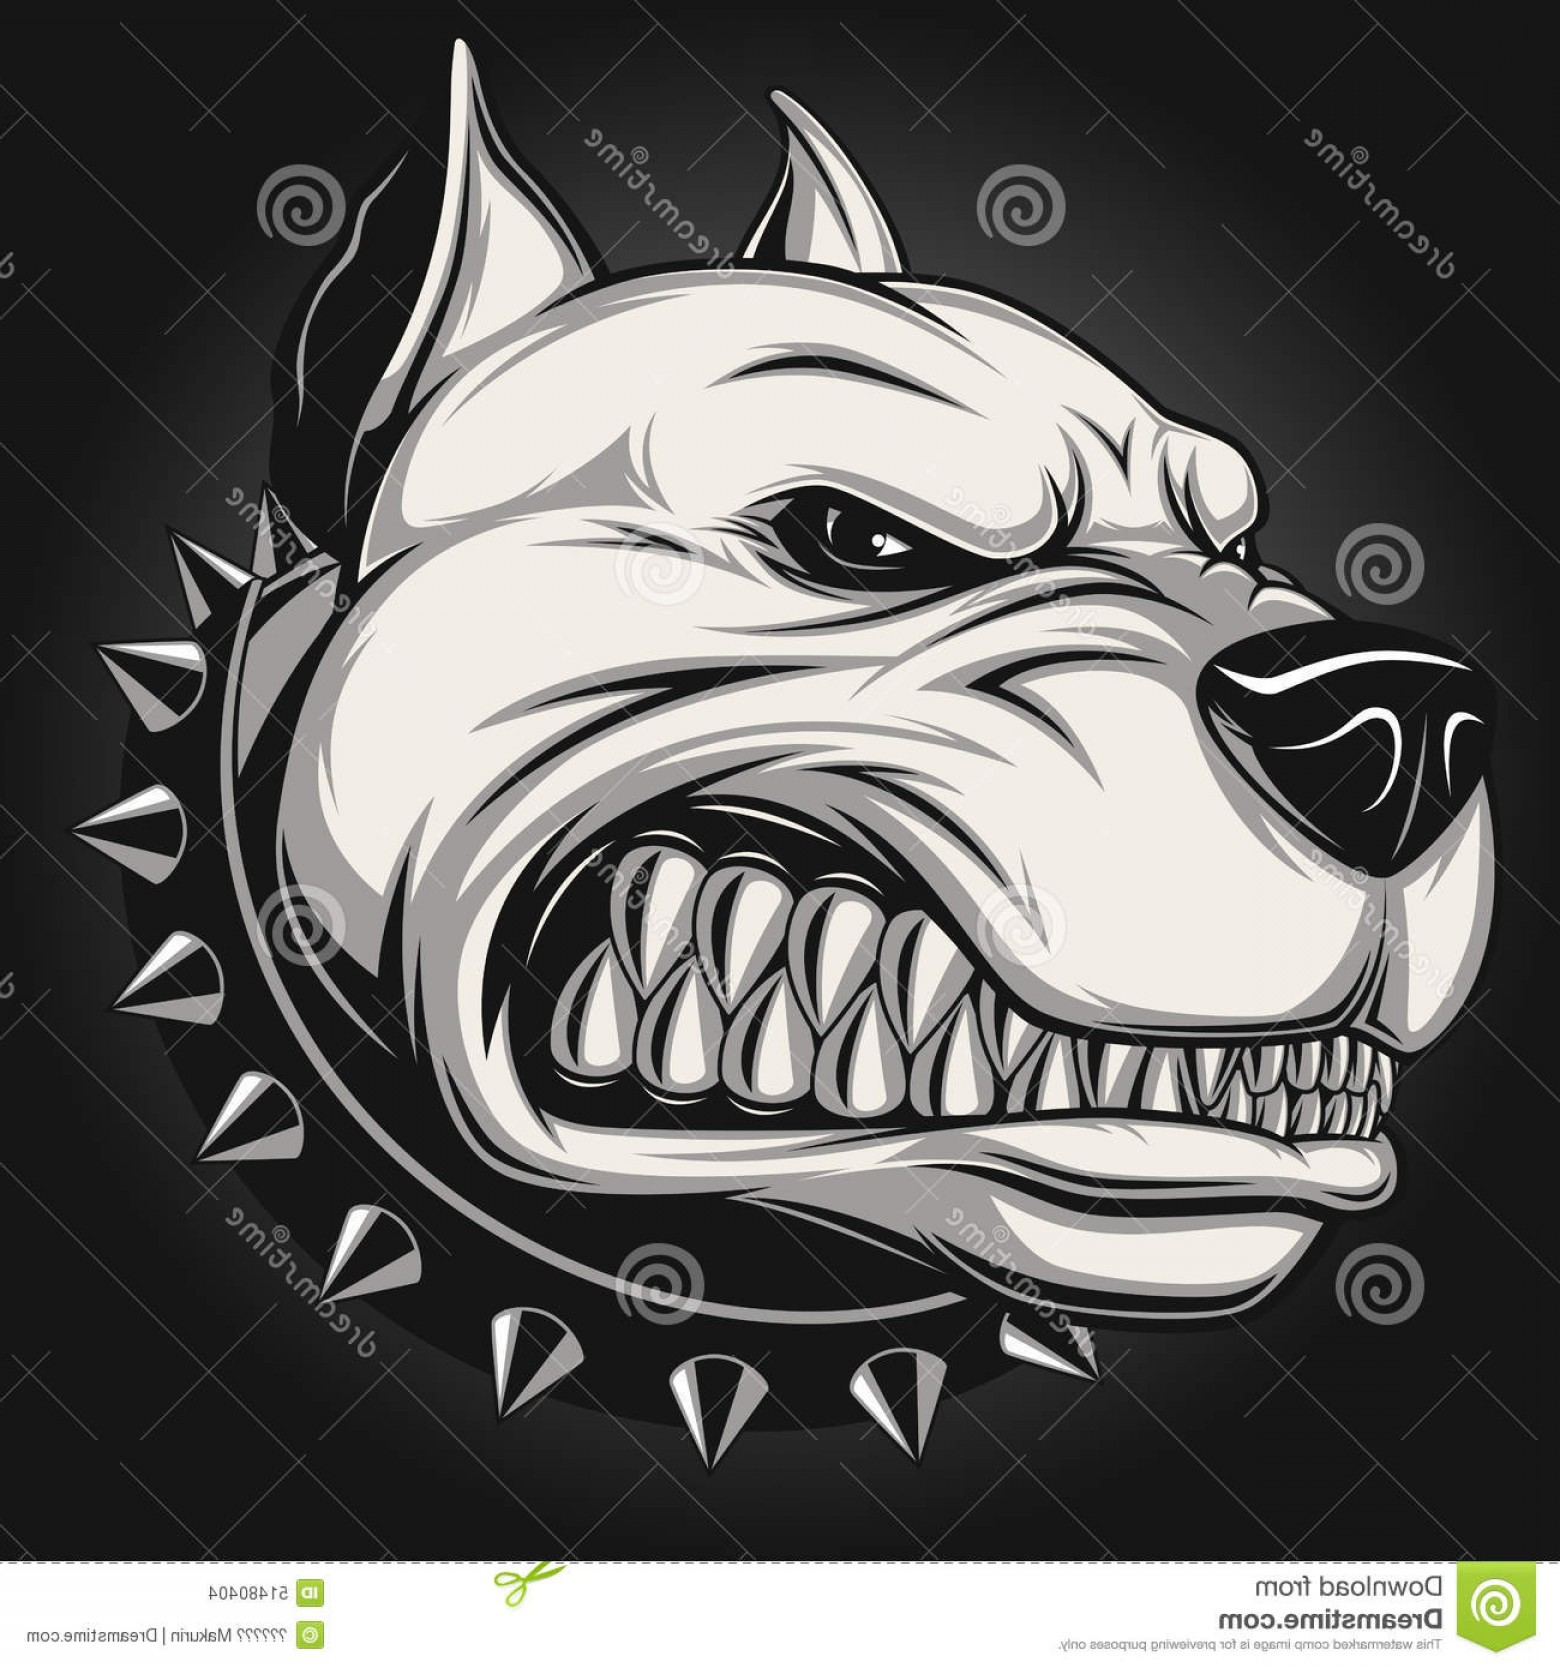 Dog Mascot Vector: Stock Illustration Angry Dog Vector Illustration Pitbull Mascot Head White Background Image